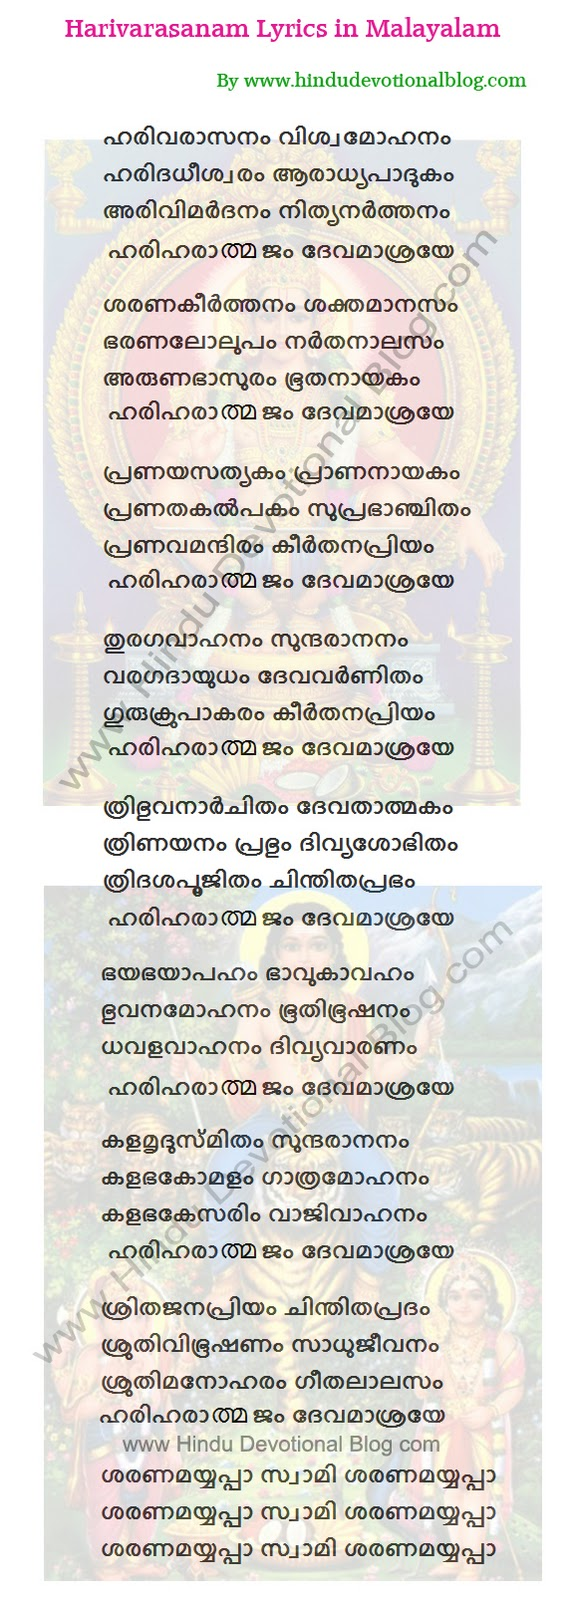 Free download Harivarasanam Lyrics in Malayalam Language